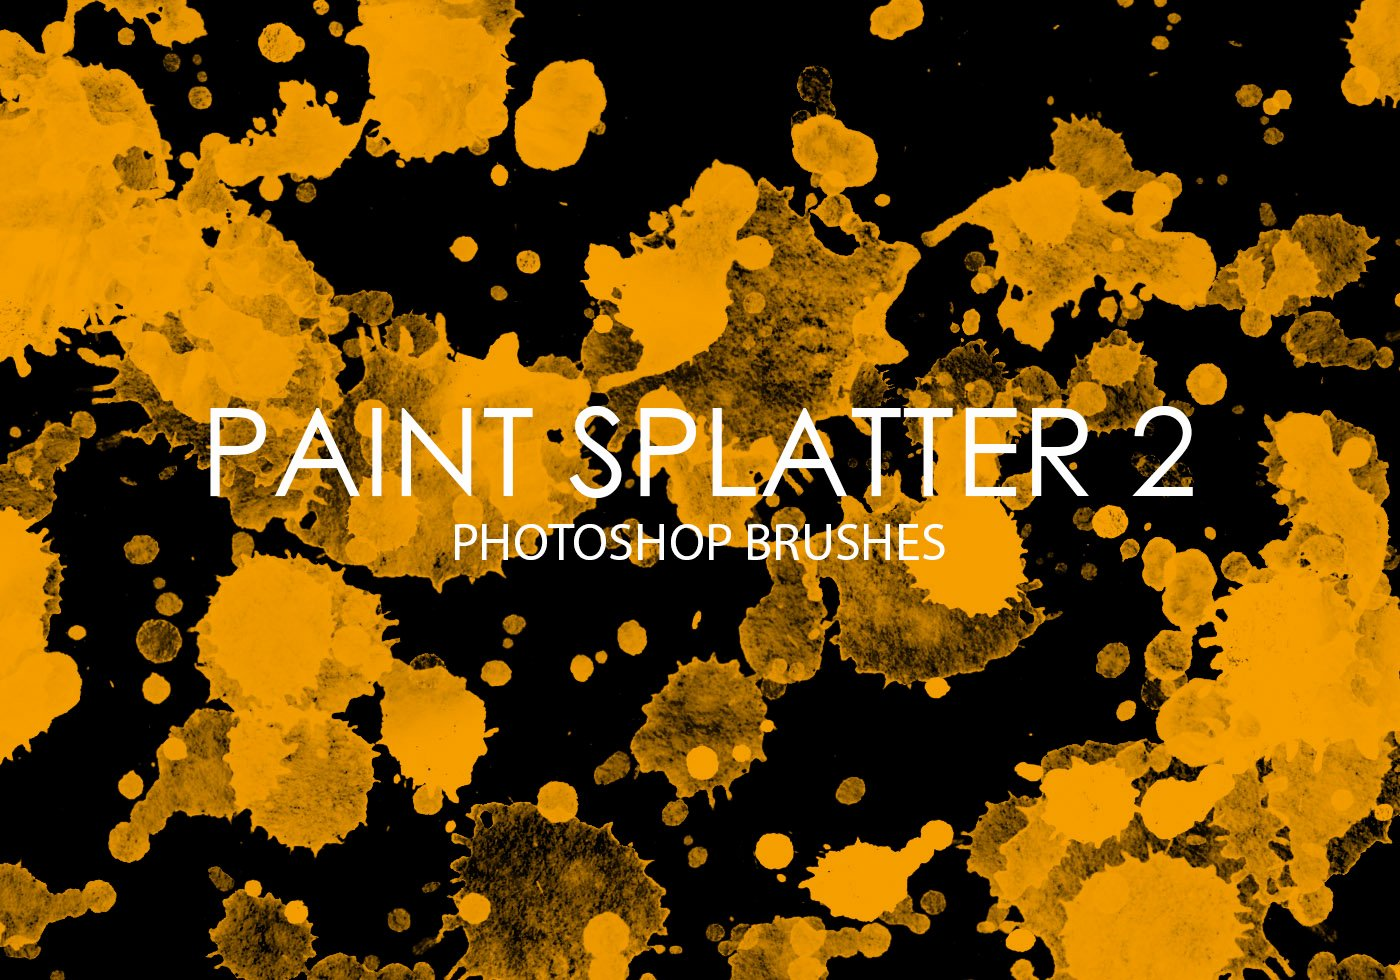 Paint Splatter Brush Photoshop Lovely Free Paint Splatter Shop Brushes 2 Free Shop